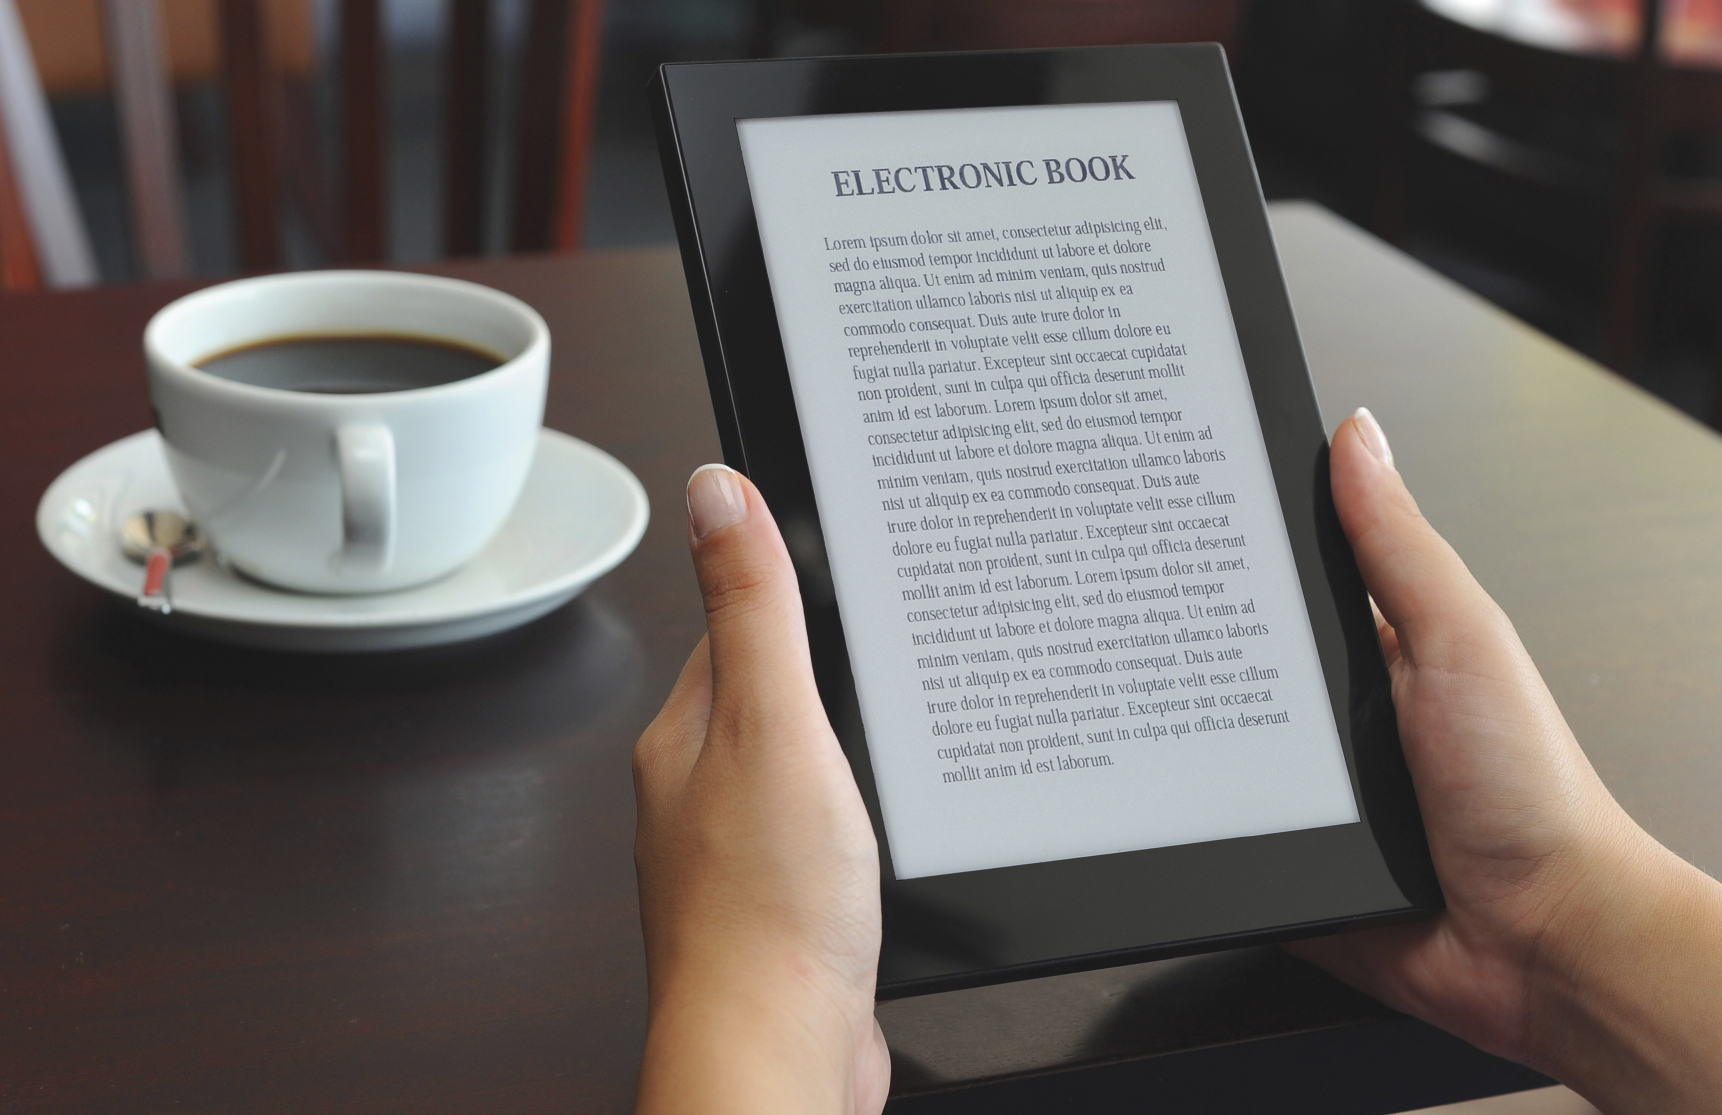 Libros Epub Gratis Para Ipad 800 Free Ebooks For Ipad Kindle Other Devices Open Culture